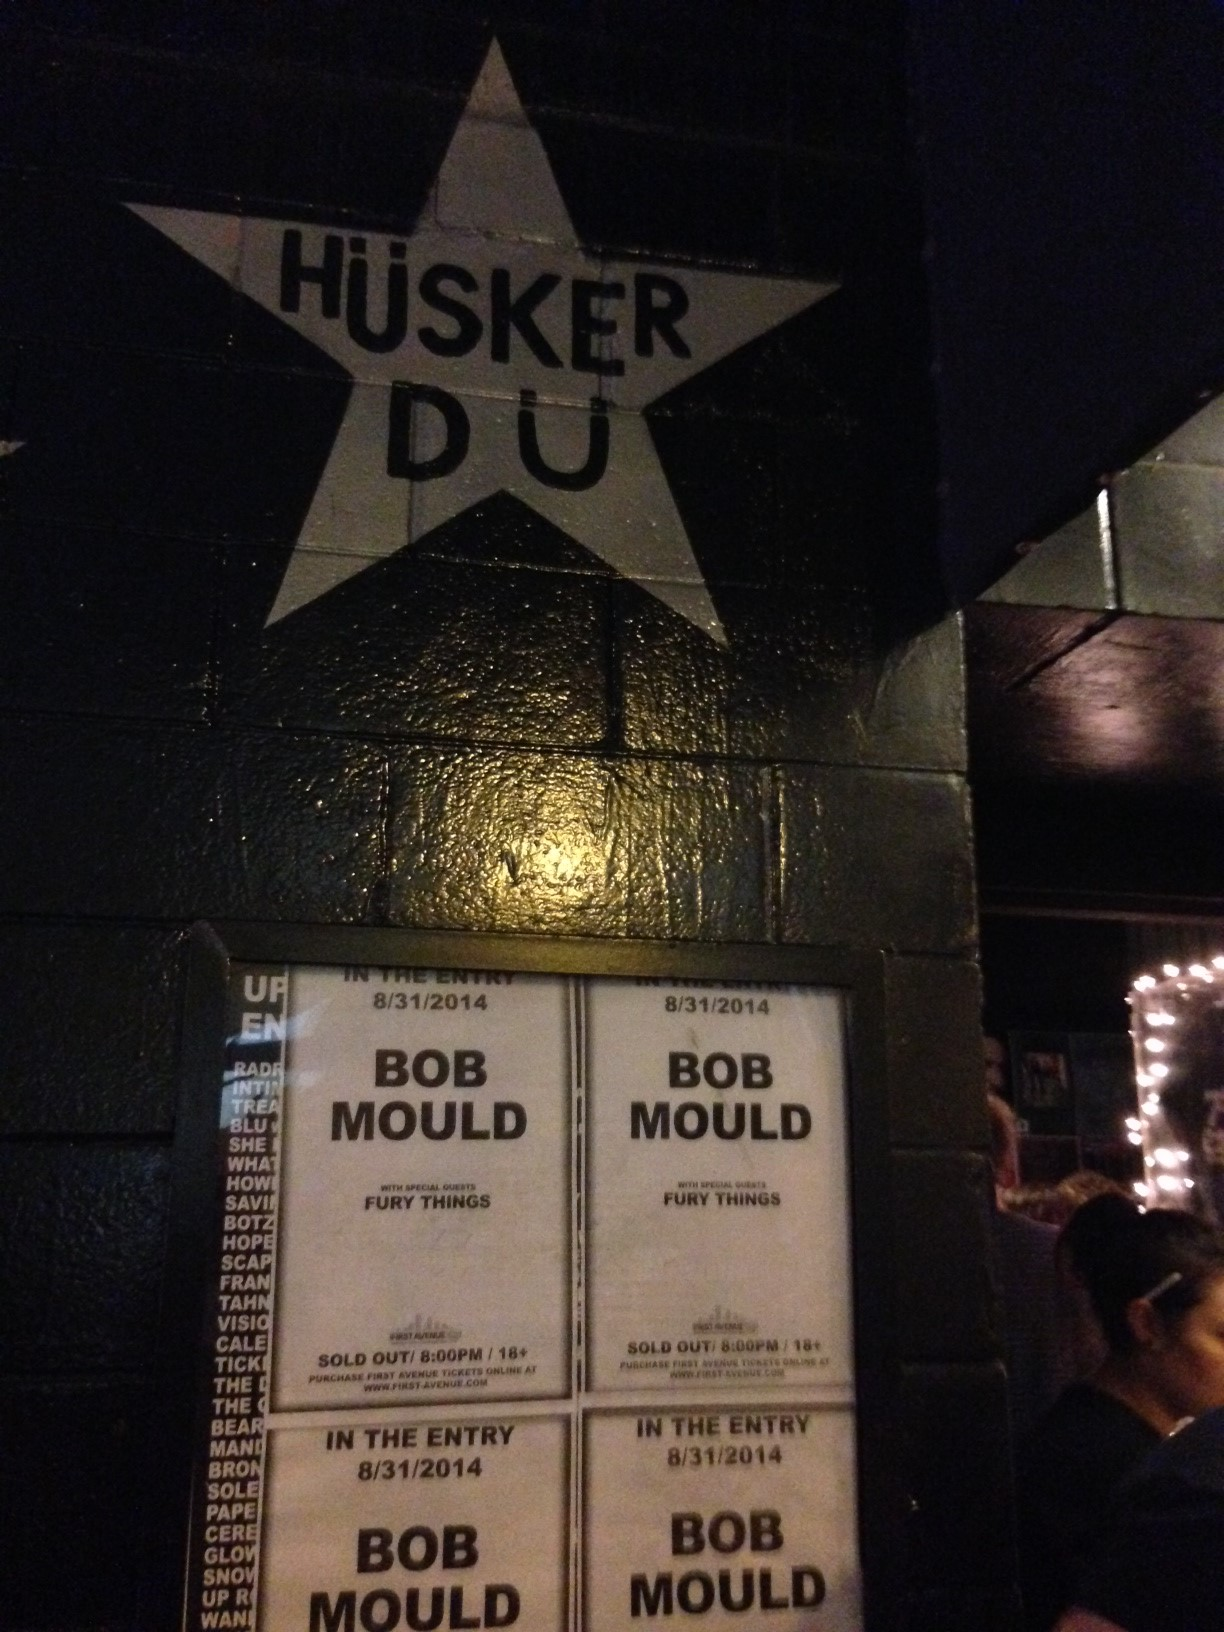 The star for Mould's old band is not-so-coincidentally right next to the 7th Street Entry door.